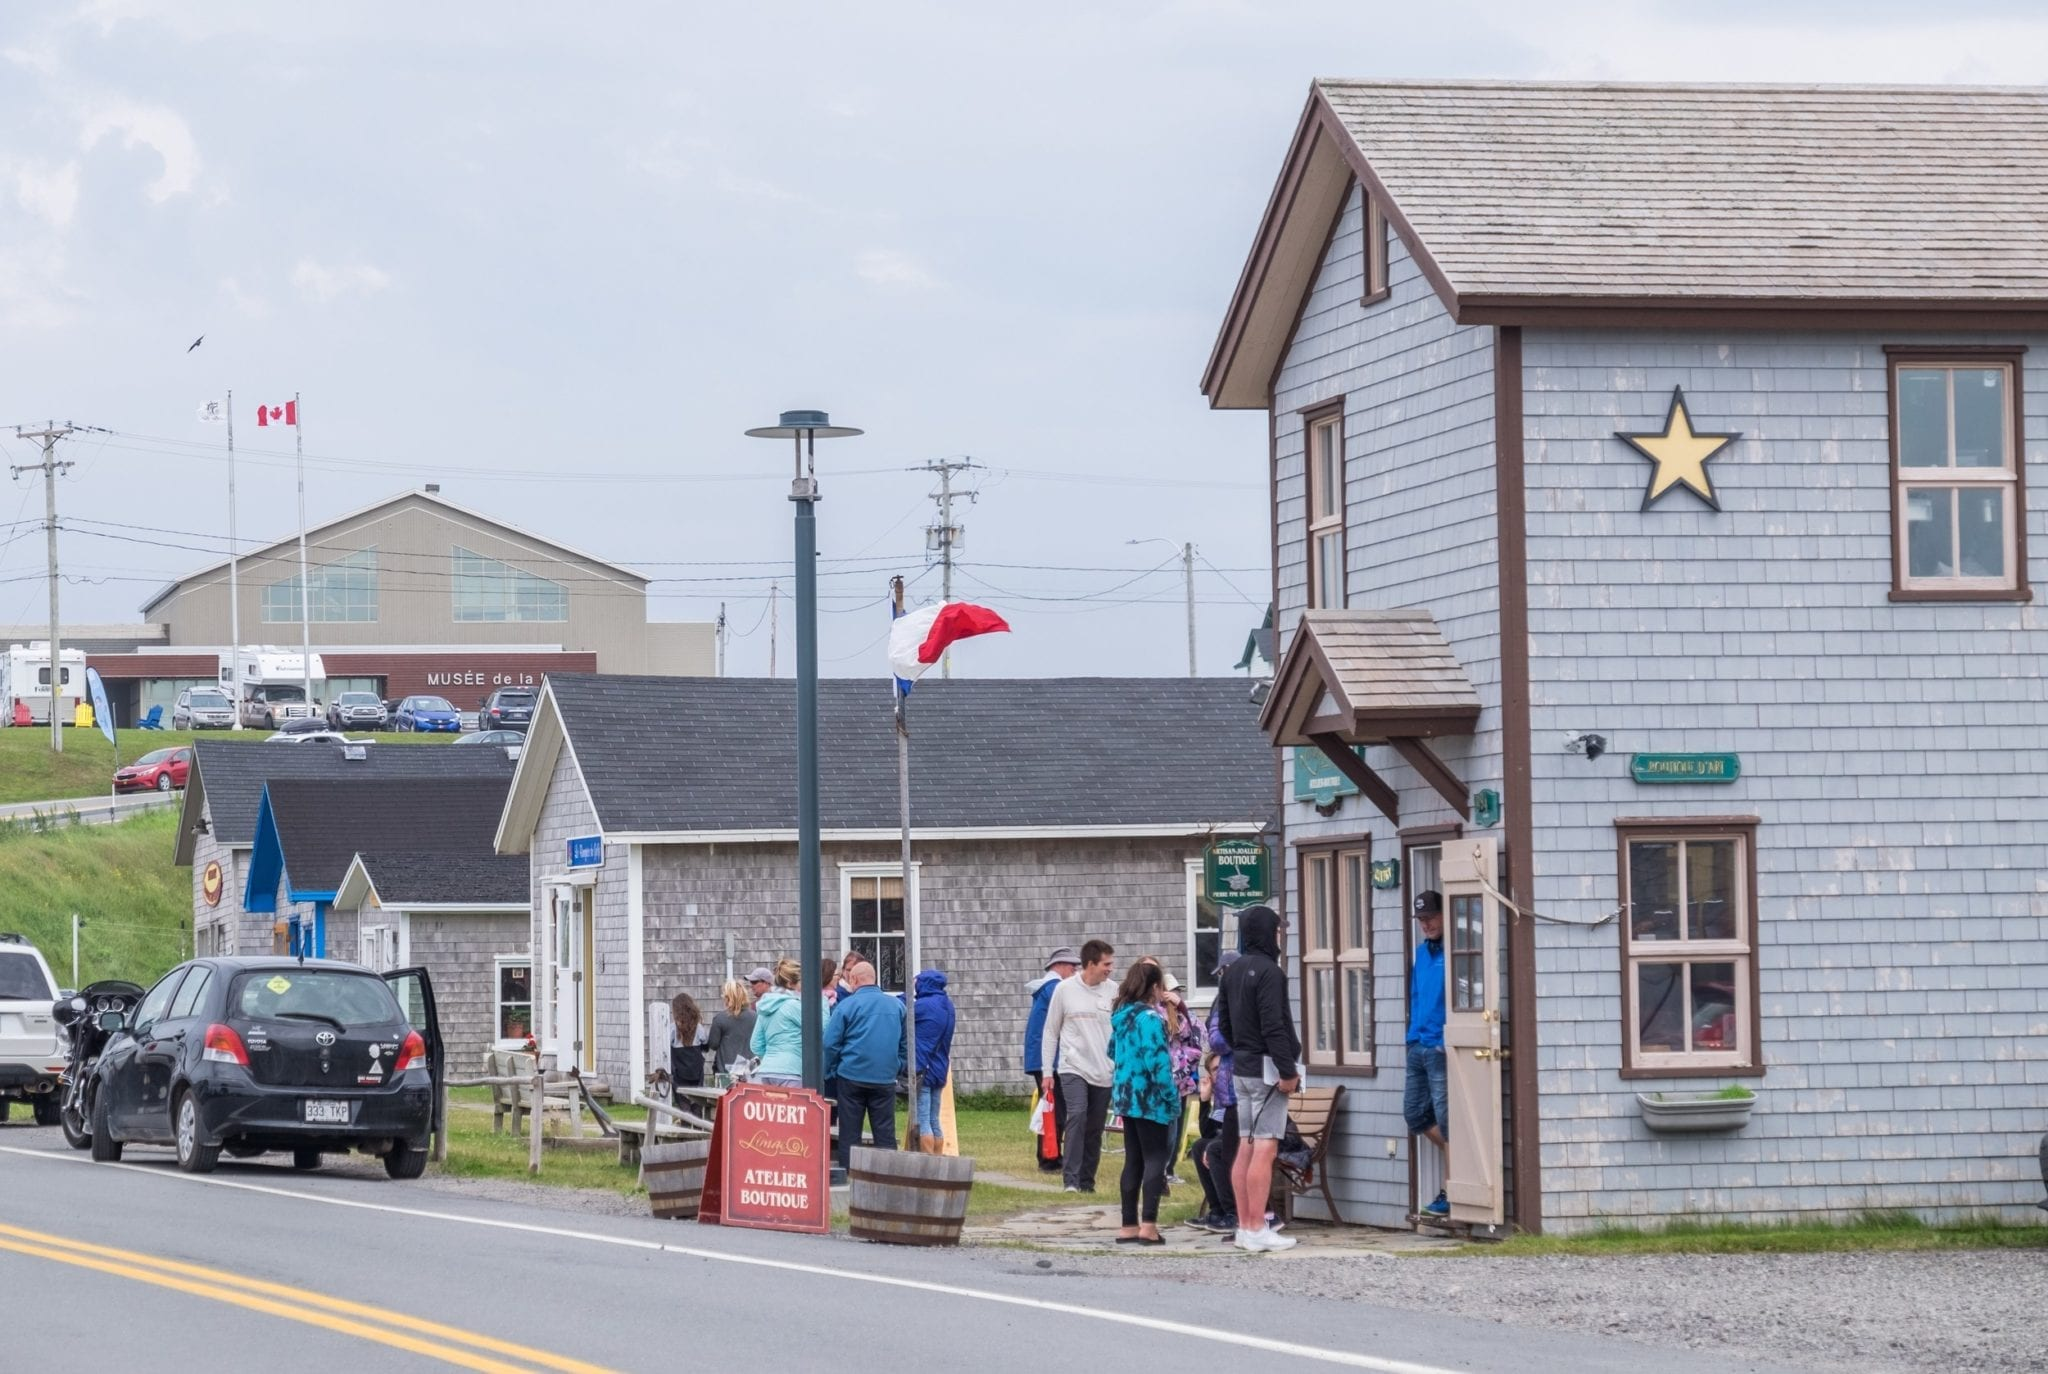 Gray houses and boutiques lined up in rows in the Iles-de-la-Madeleine.